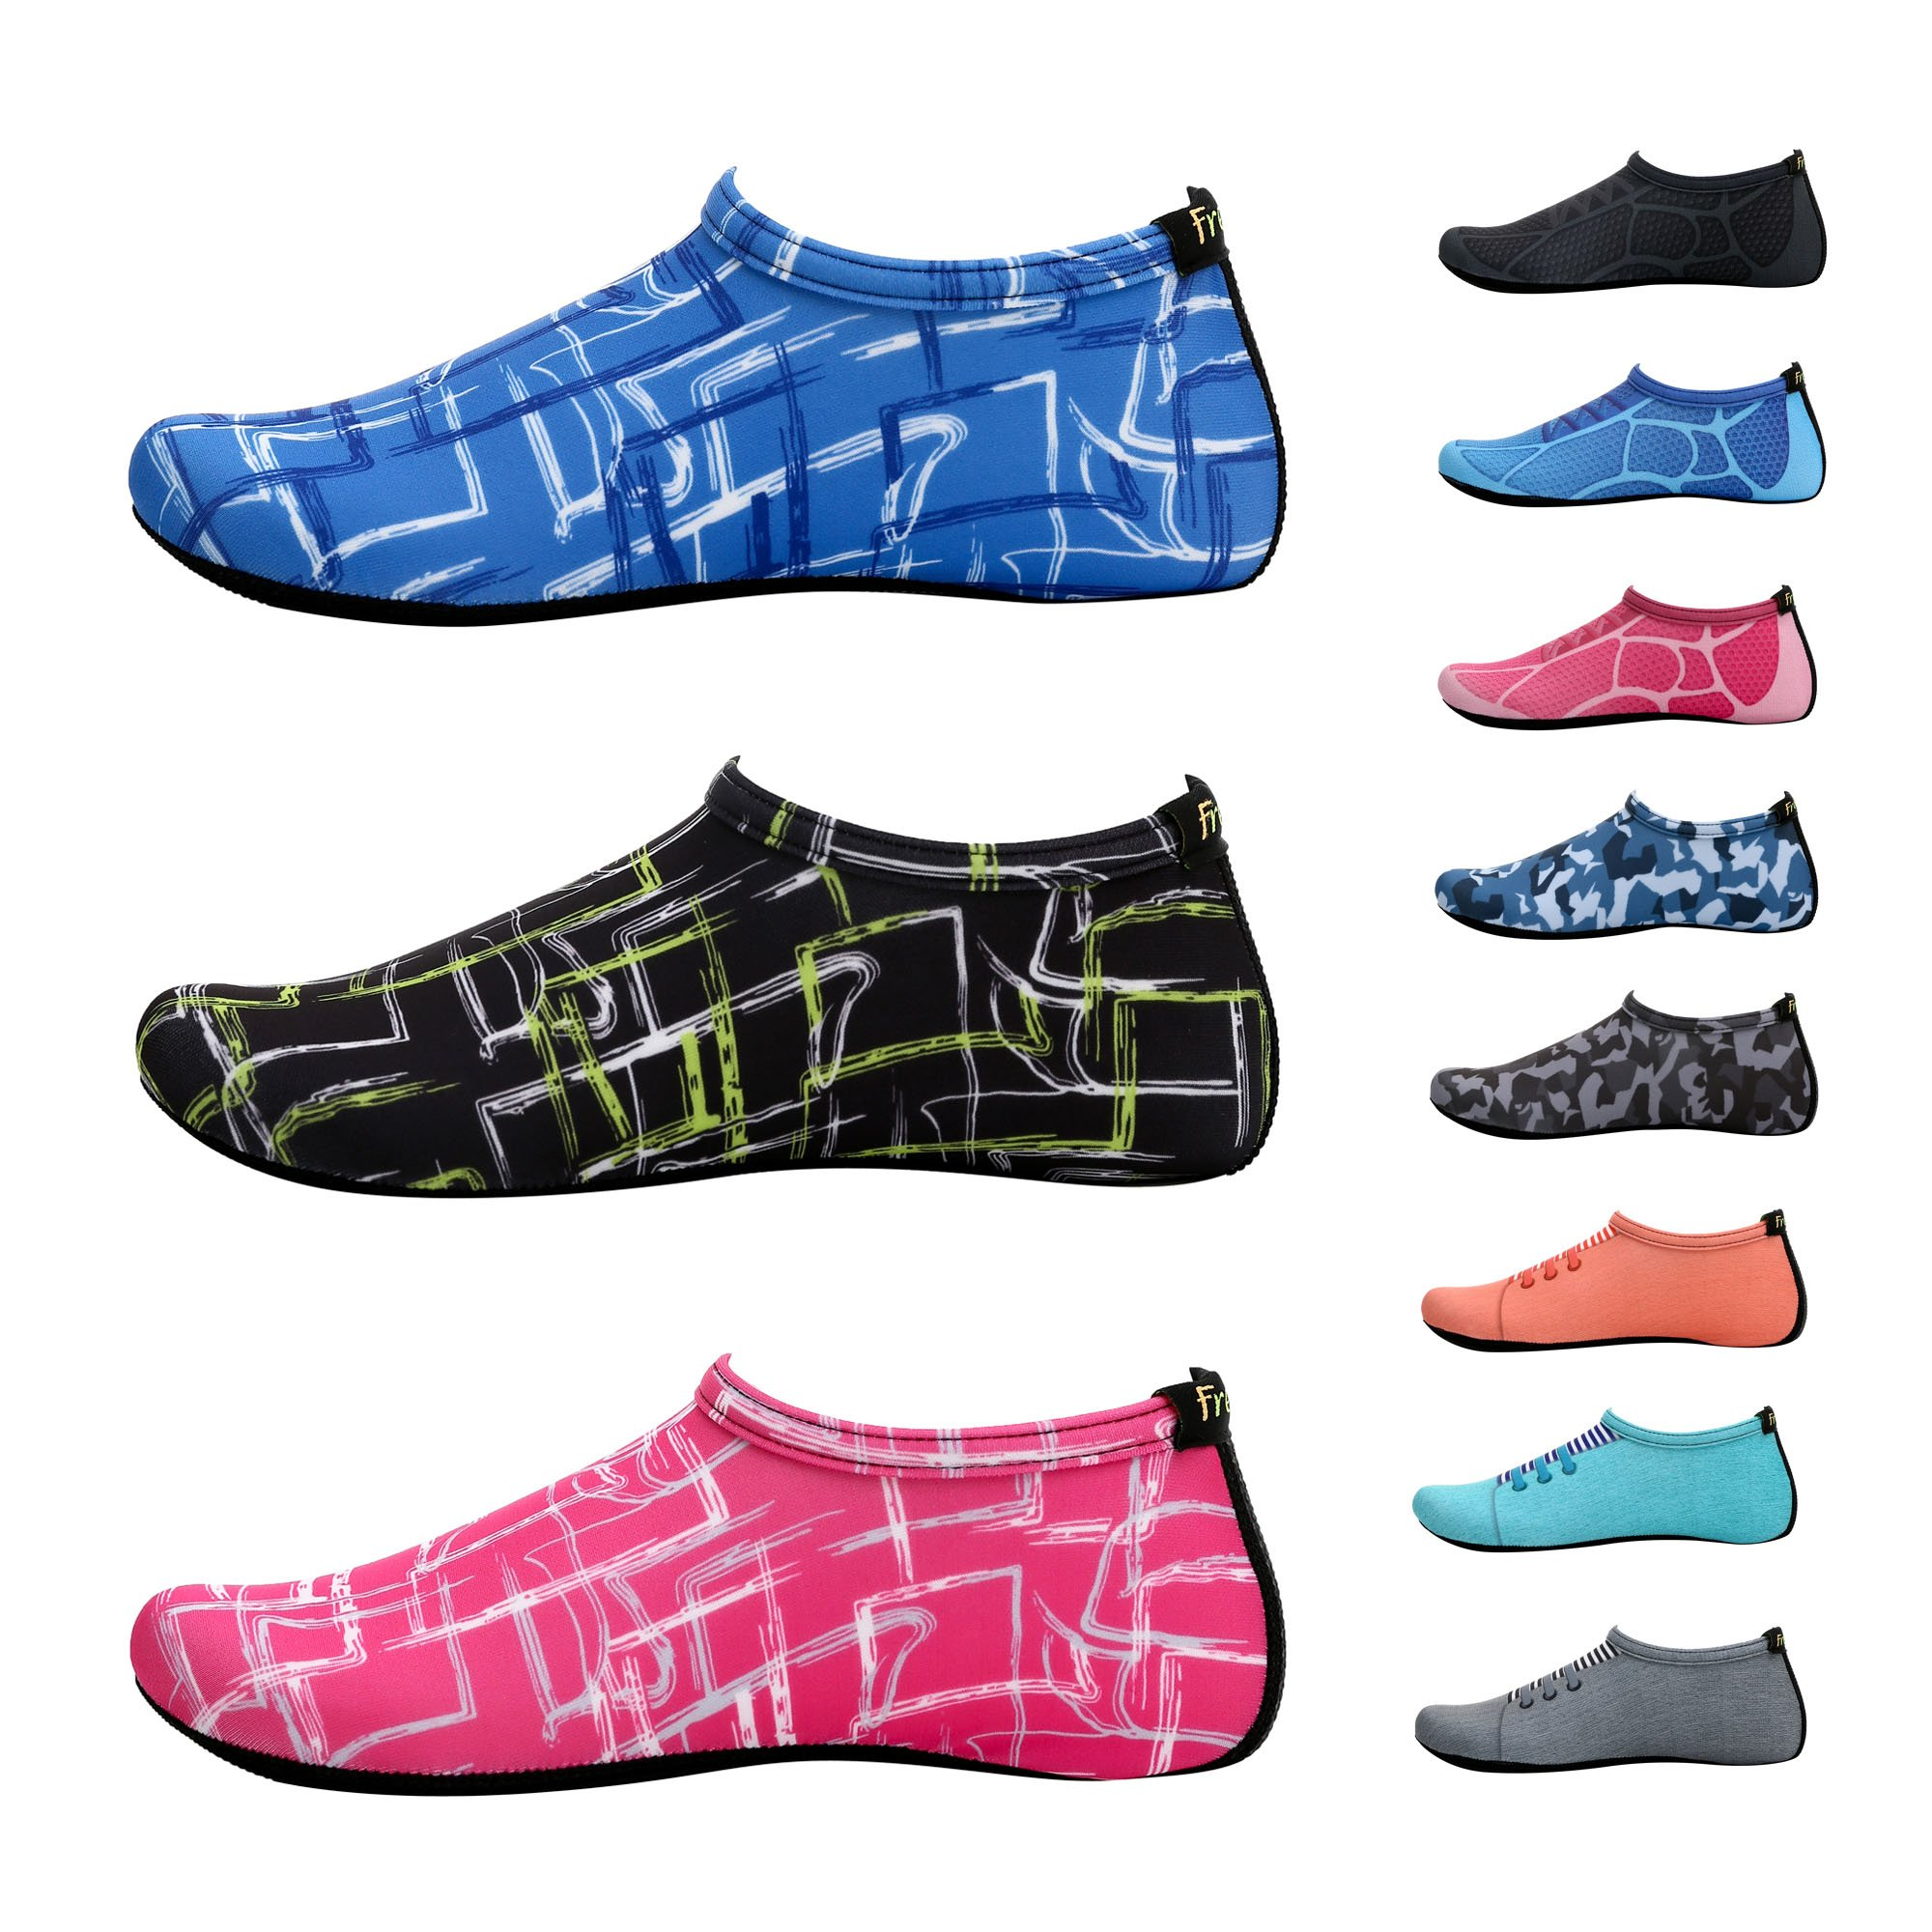 Freely New Barefoot Water Skin Shoes Aqua Socks For Beach Swim Surf Yoga Exercise Tpink 5. XL (US M:7.5~9, W:8.5~10)